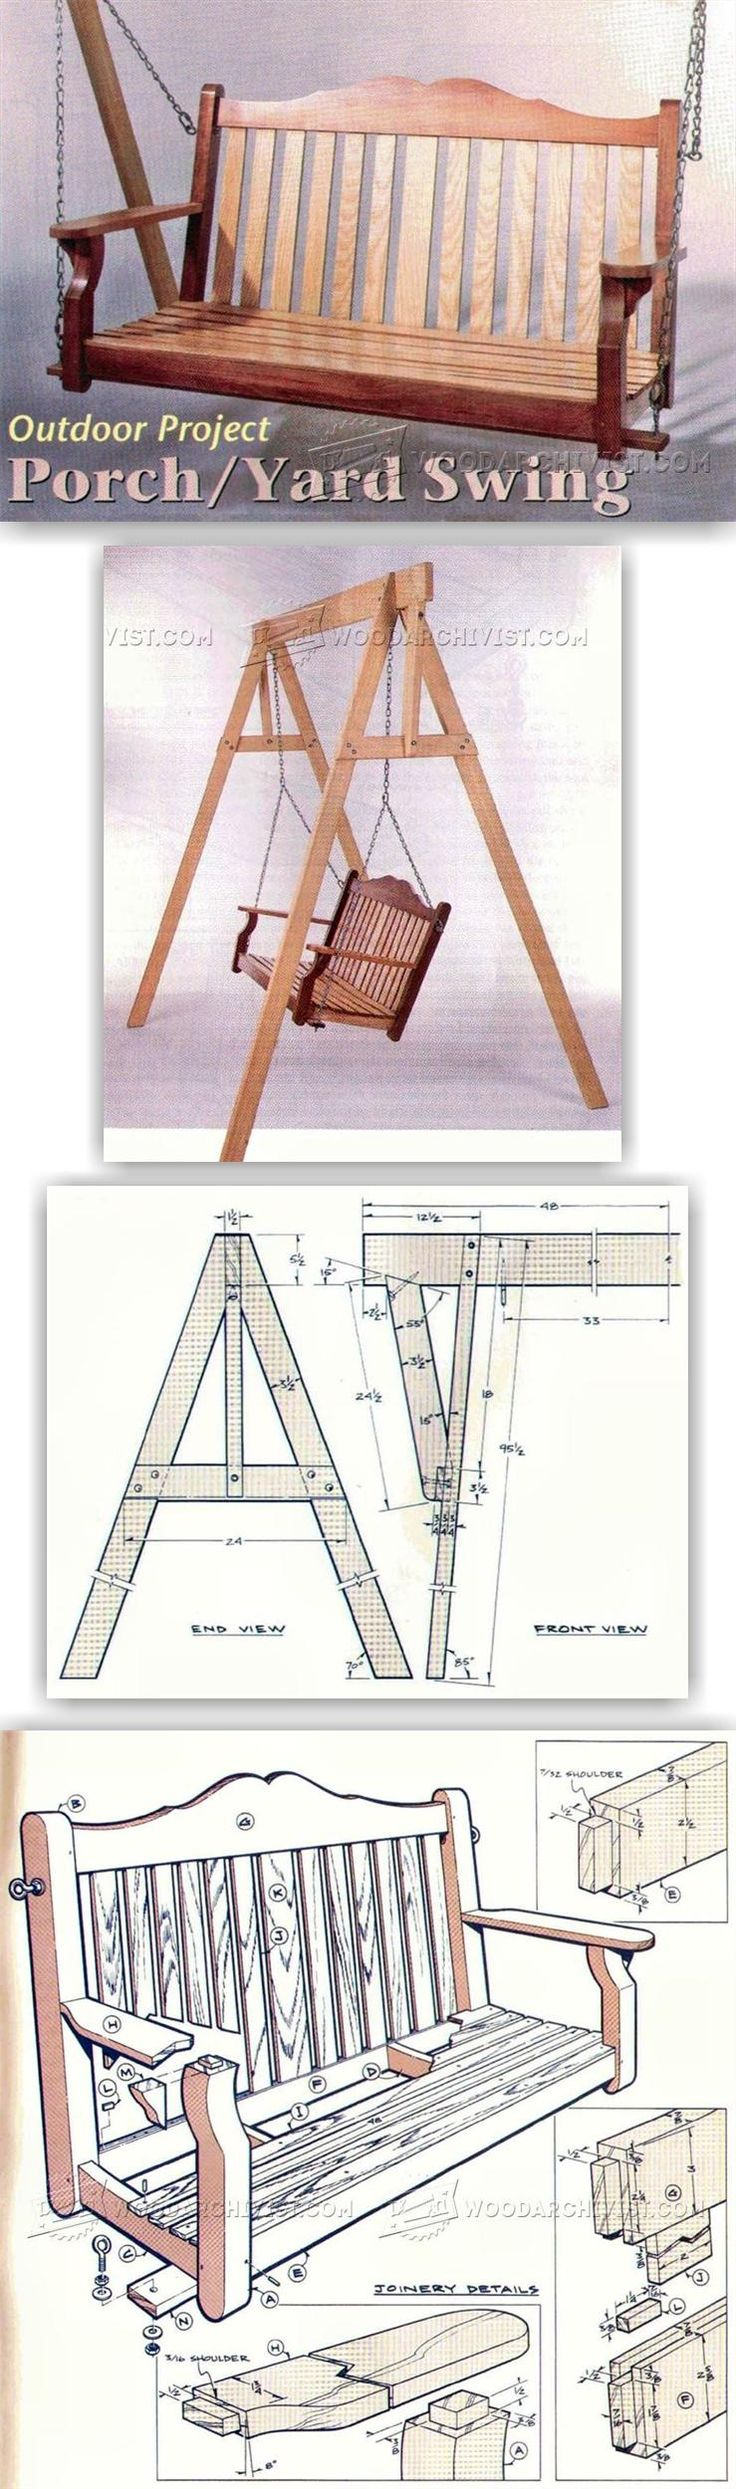 Porch/Yard Swing Plans - Outdoor Furniture Plans and Projects | WoodArchivist.com